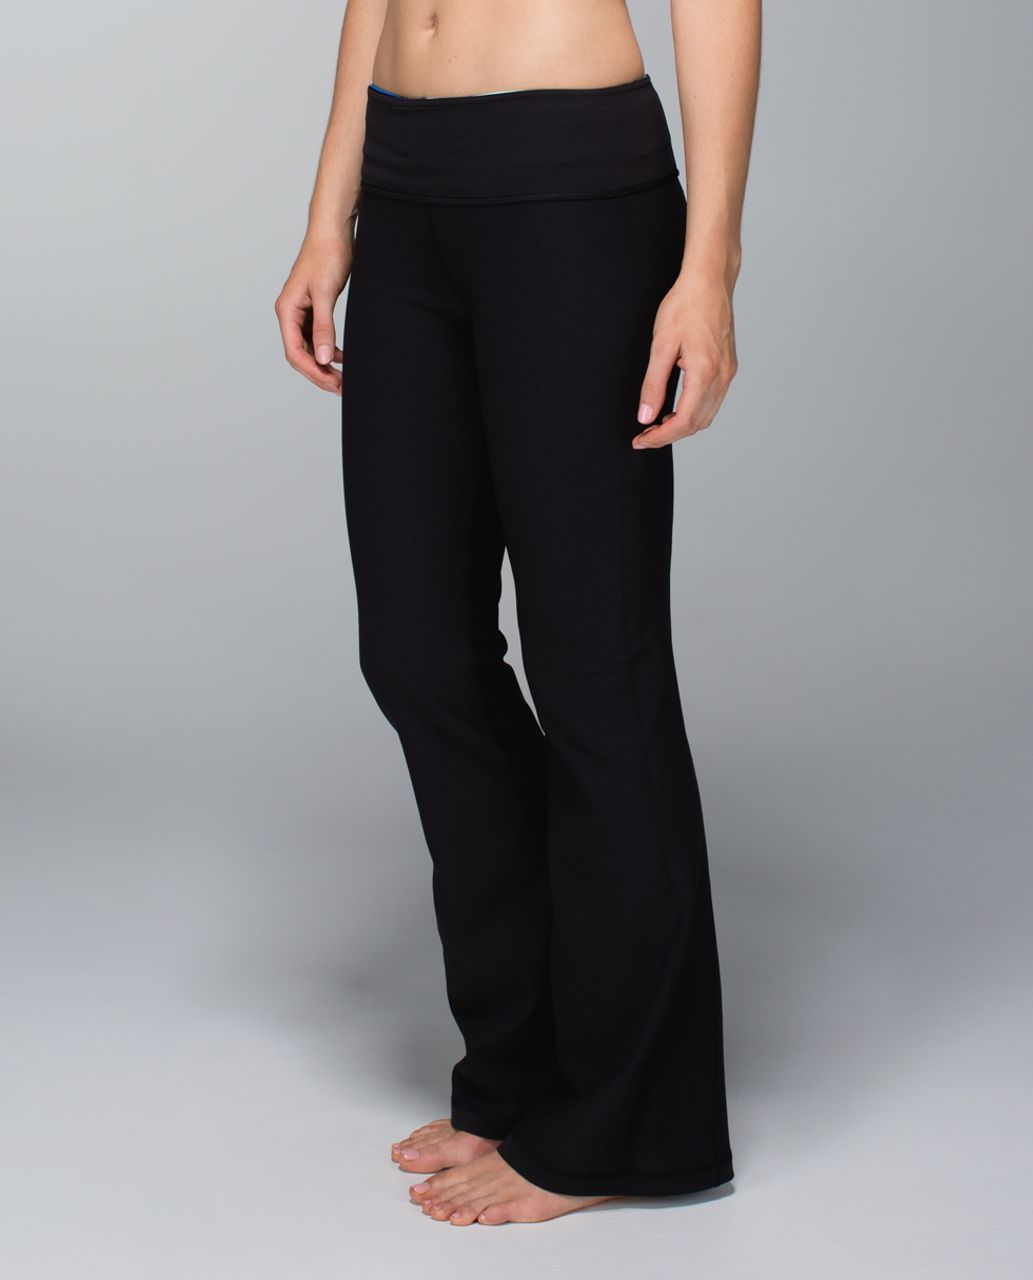 Lululemon Groove Pant (Regular) *Full-On Luon - Black / Quilt Winter 13-18